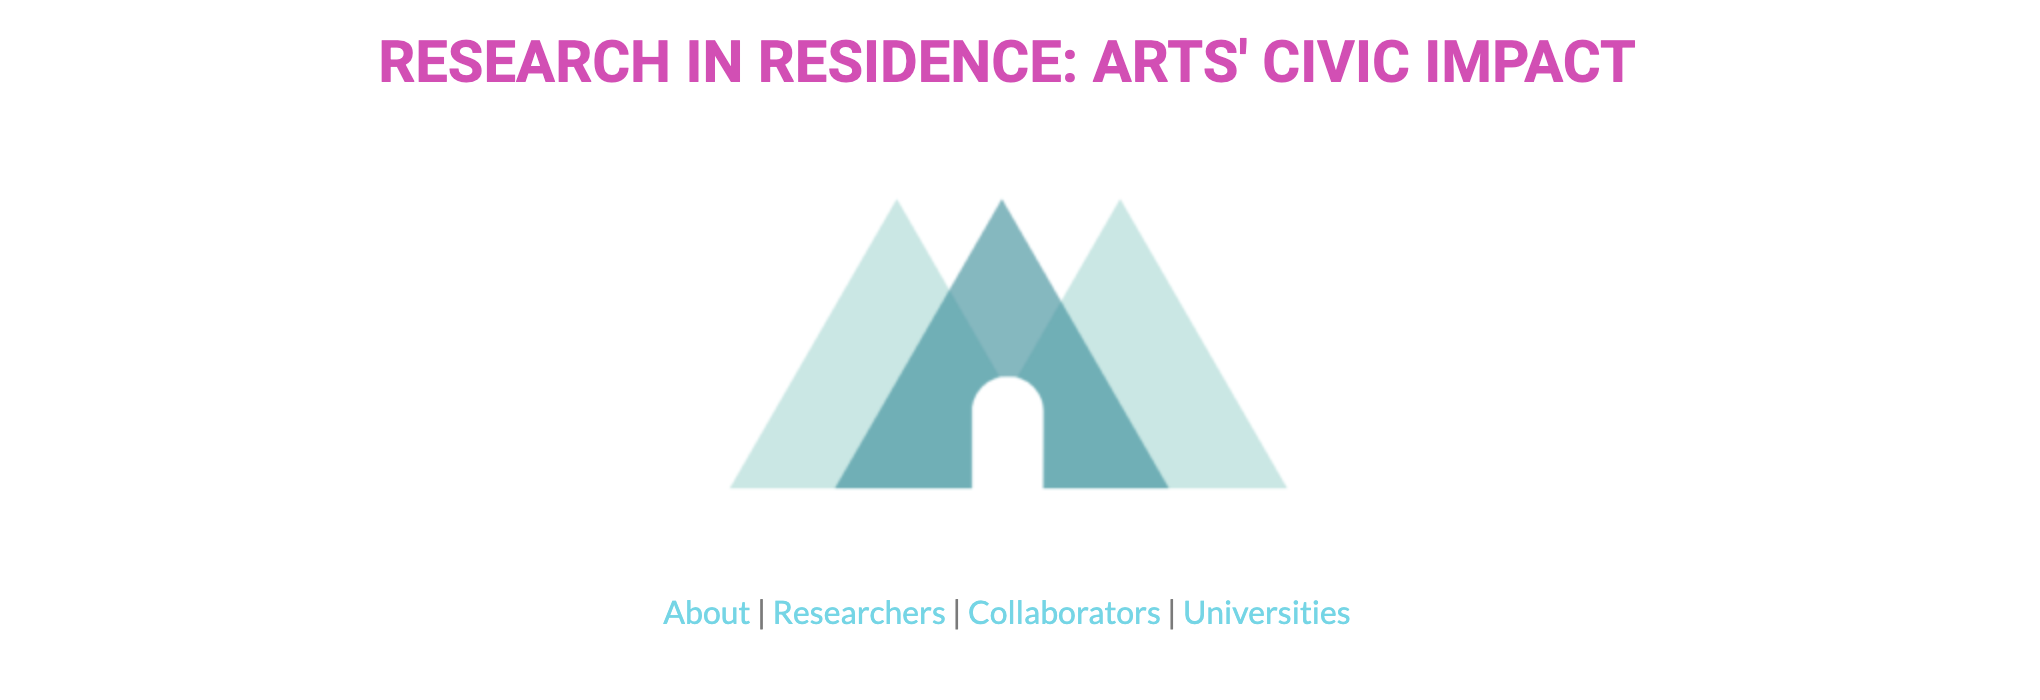 Research in Residence: Arts' Civic